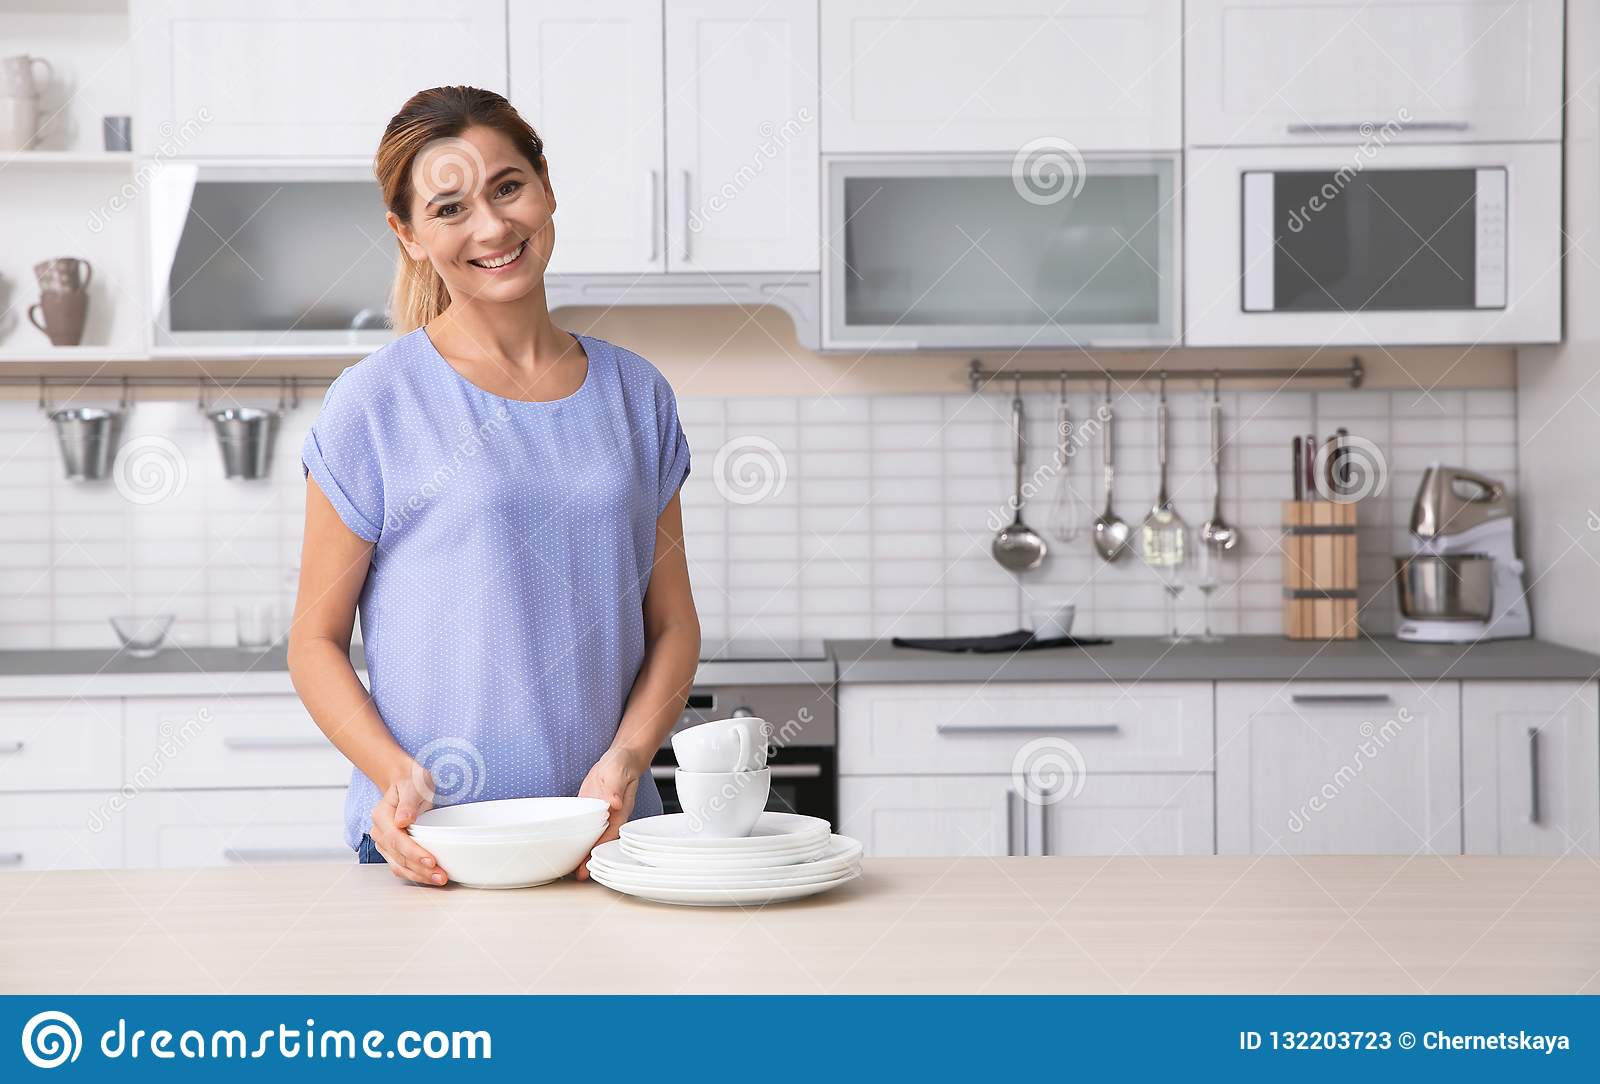 Woman with clean dishes near table in kitchen